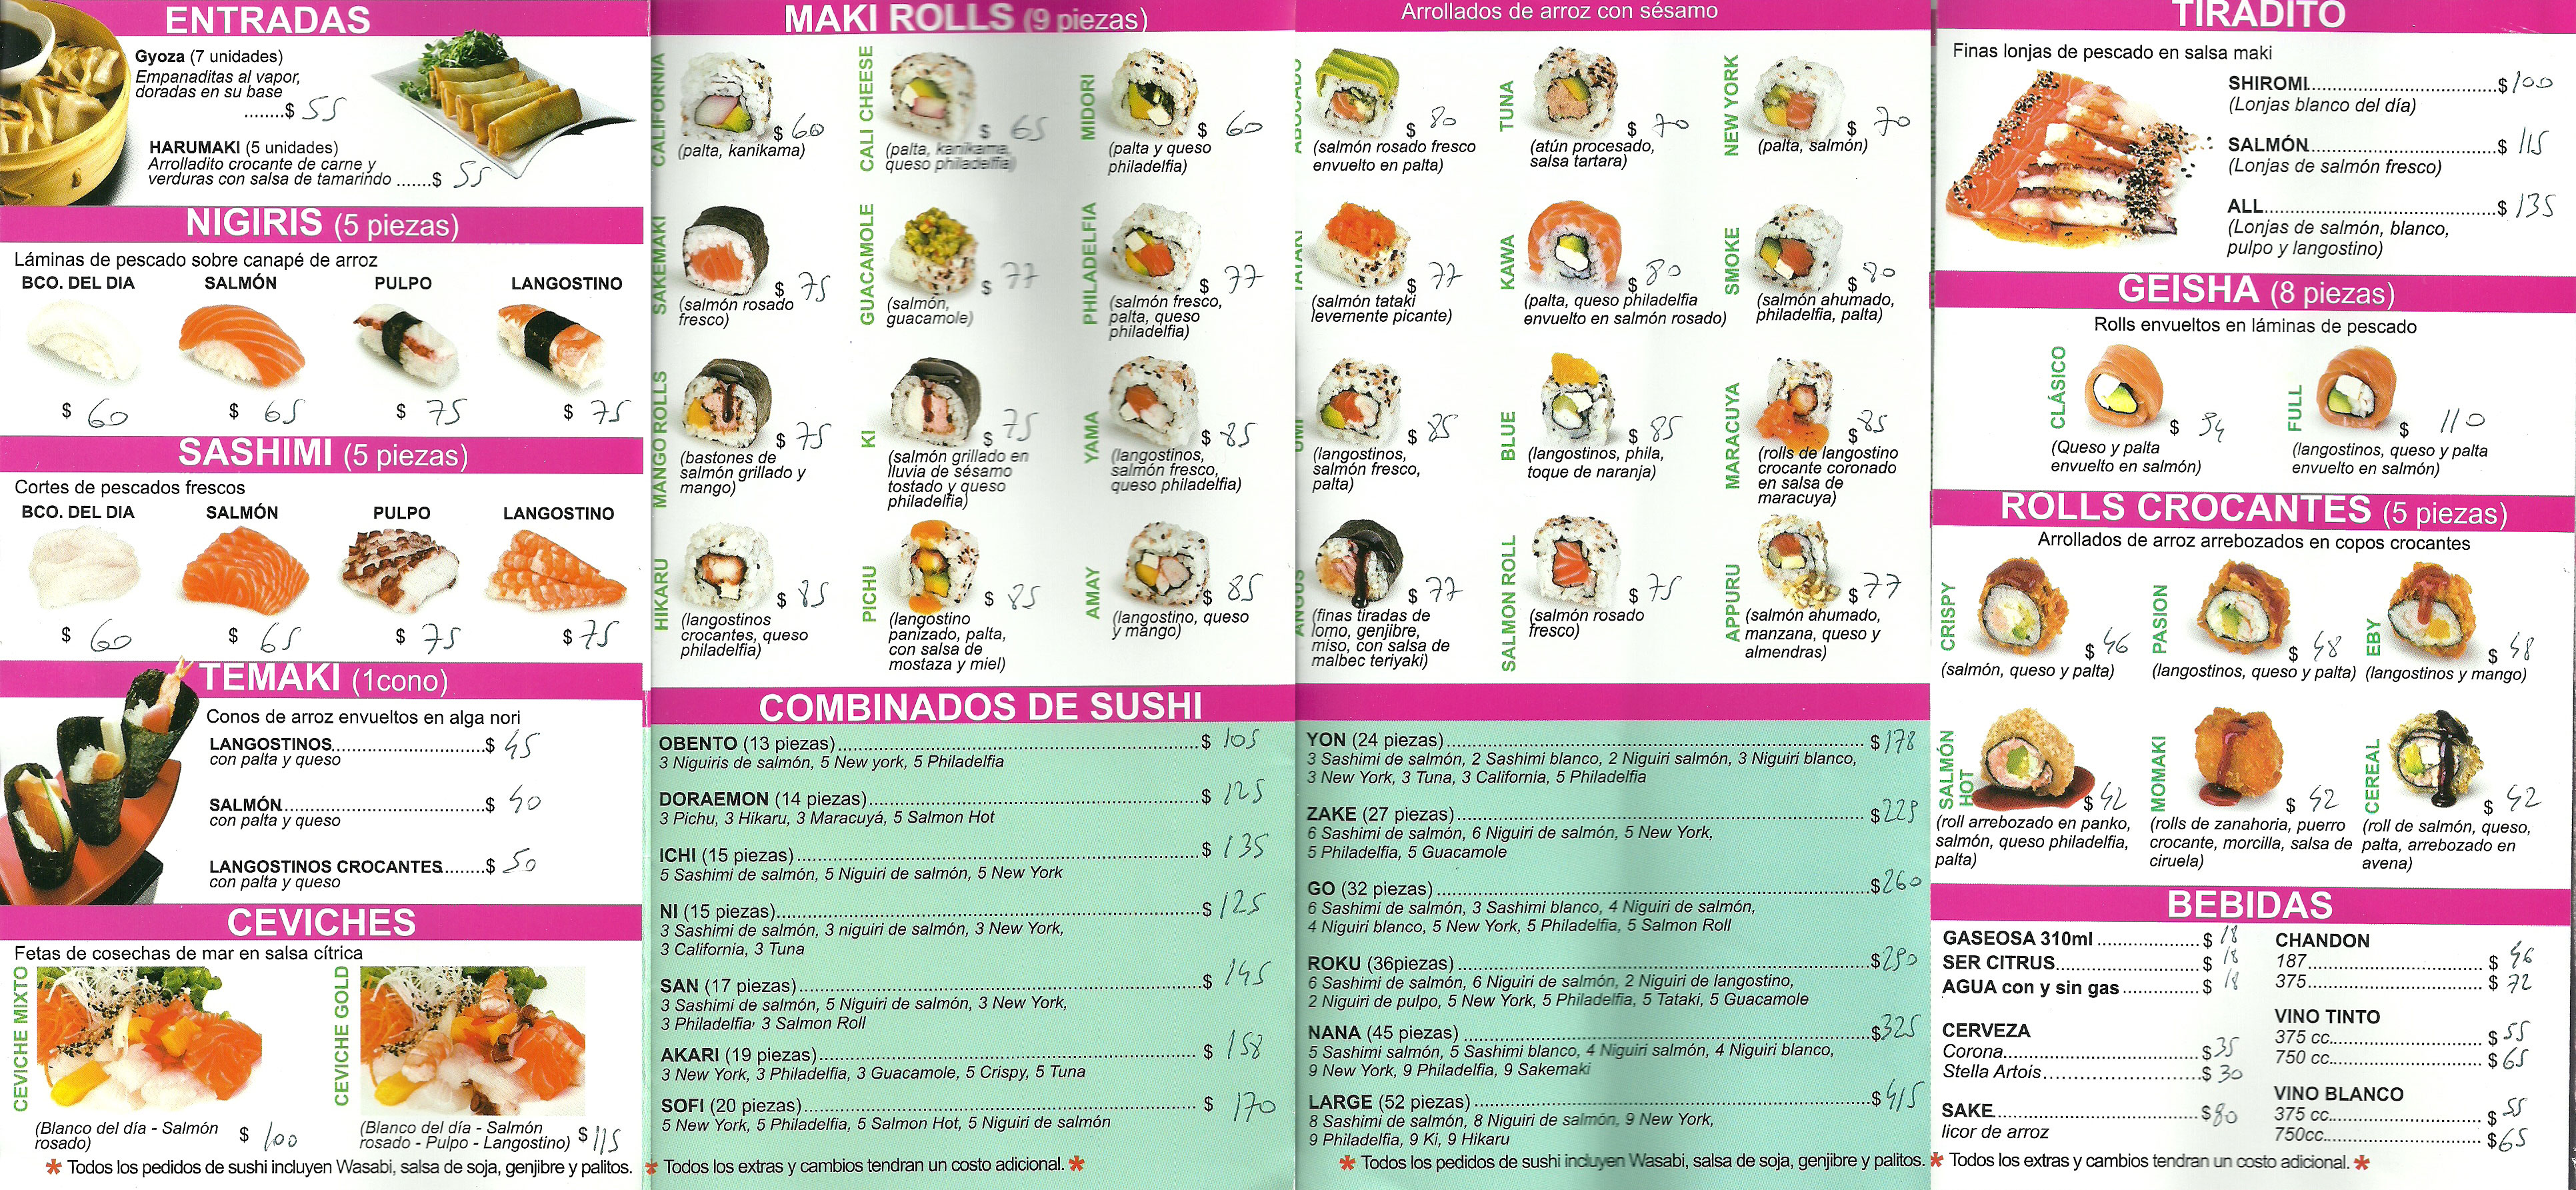 oi sushi menu new How Bad Is Inflation In Argentina?